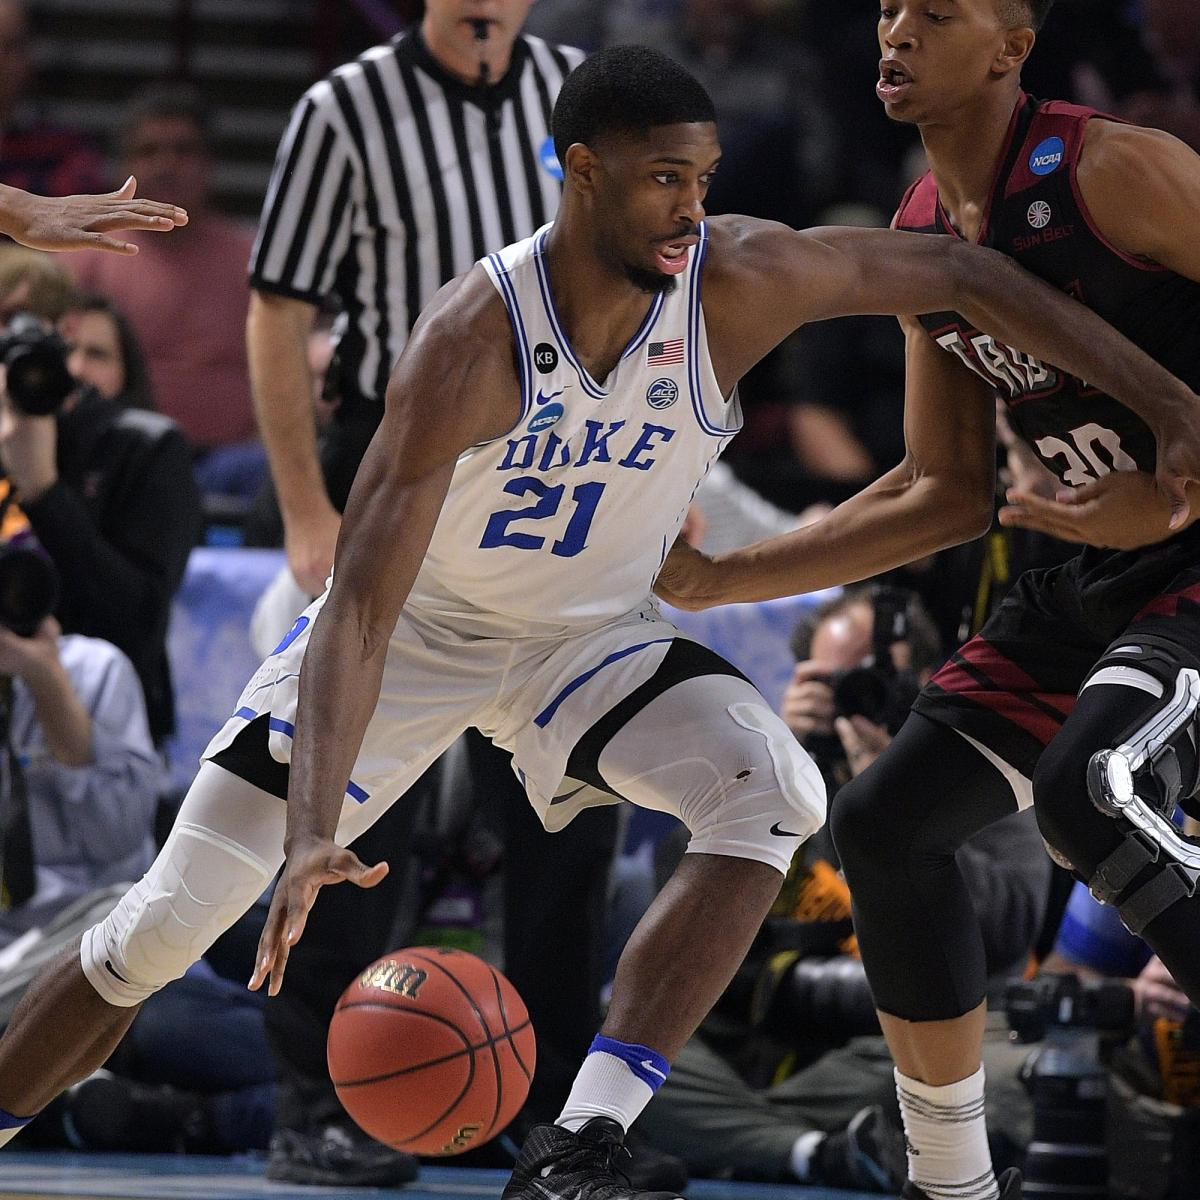 March Madness 2017 Tournament Betting Odds and Highlights